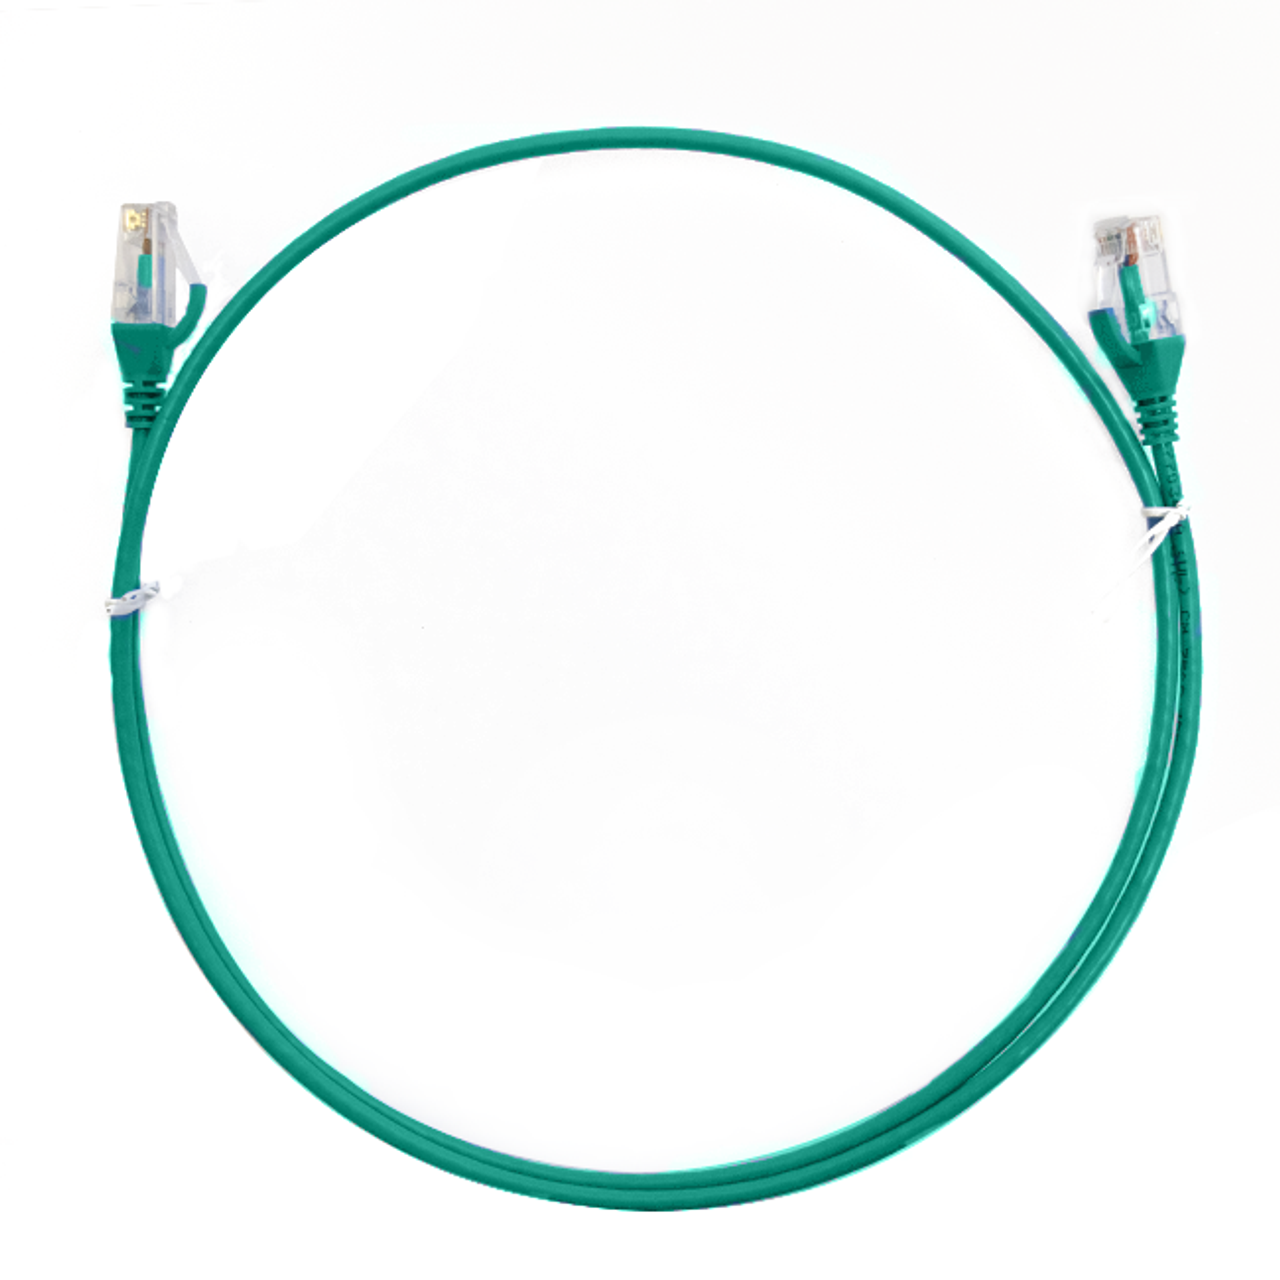 Image for 1m Cat 6 Ultra Thin LSZH Ethernet Network Cables: Green CX Computer Superstore